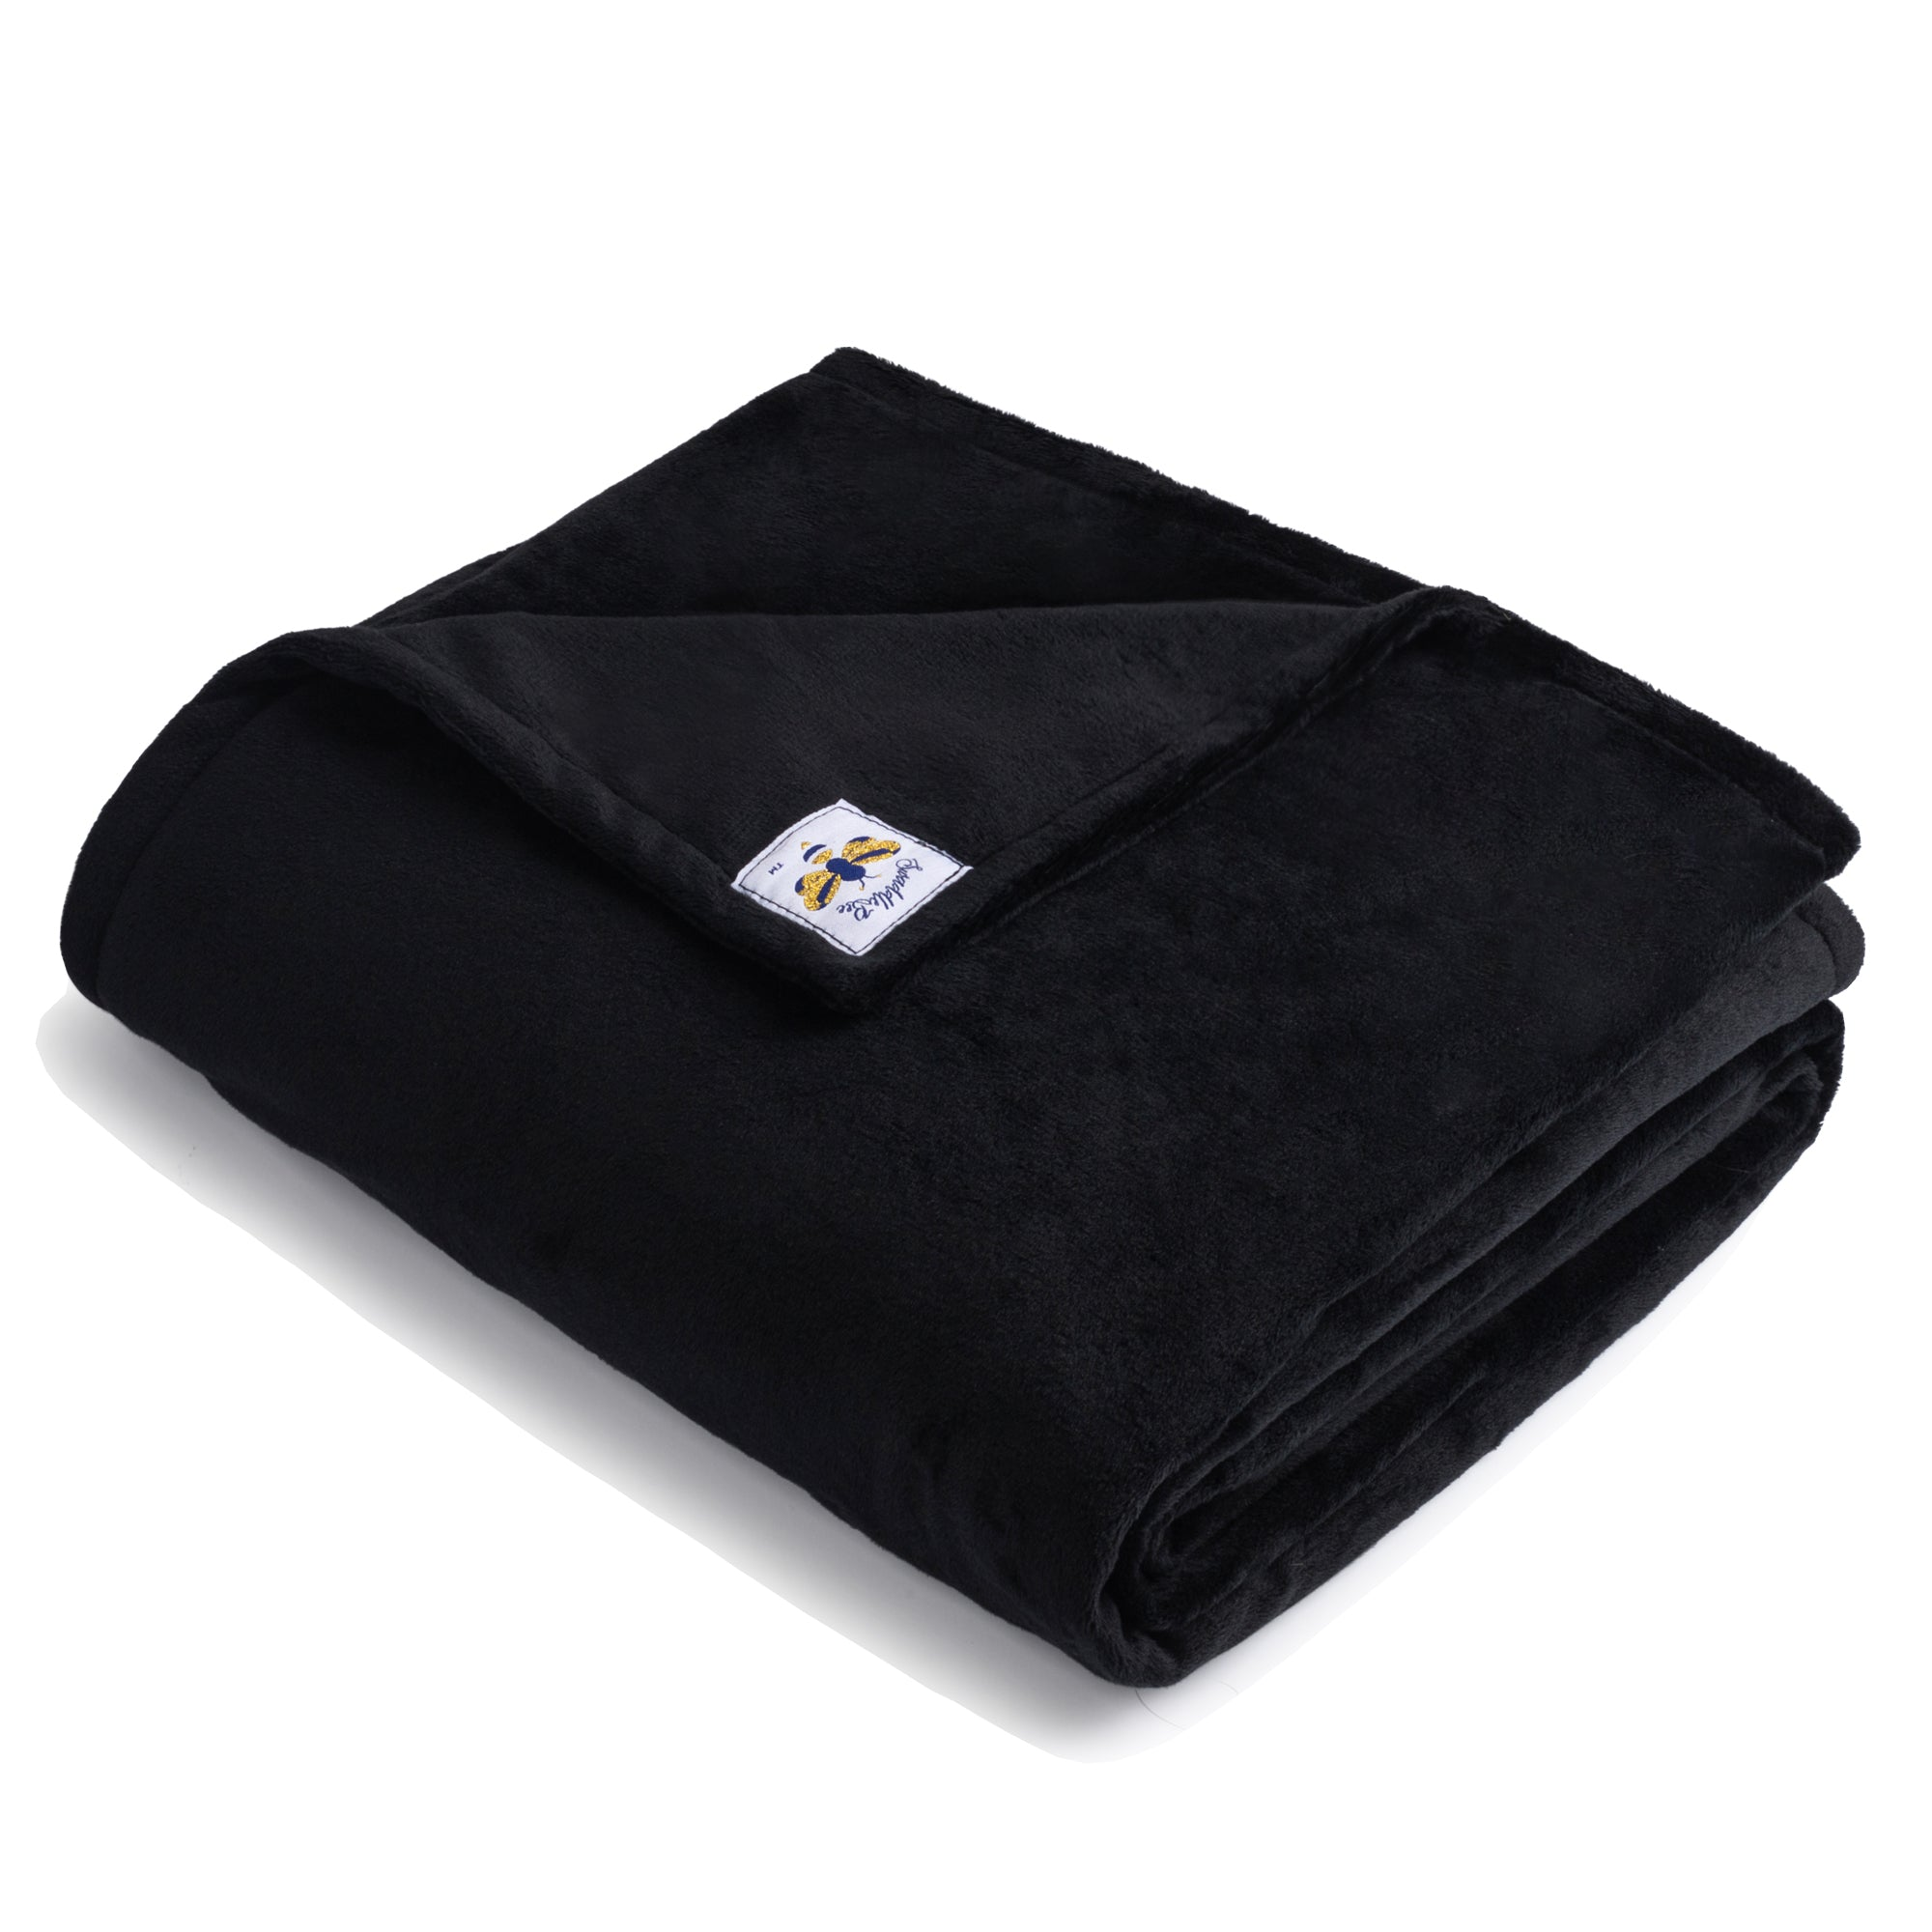 PRE ORDER BiggerBee Minky Throw Blanket Black *ARRIVES IN 1.5 WEEKS* (approx)